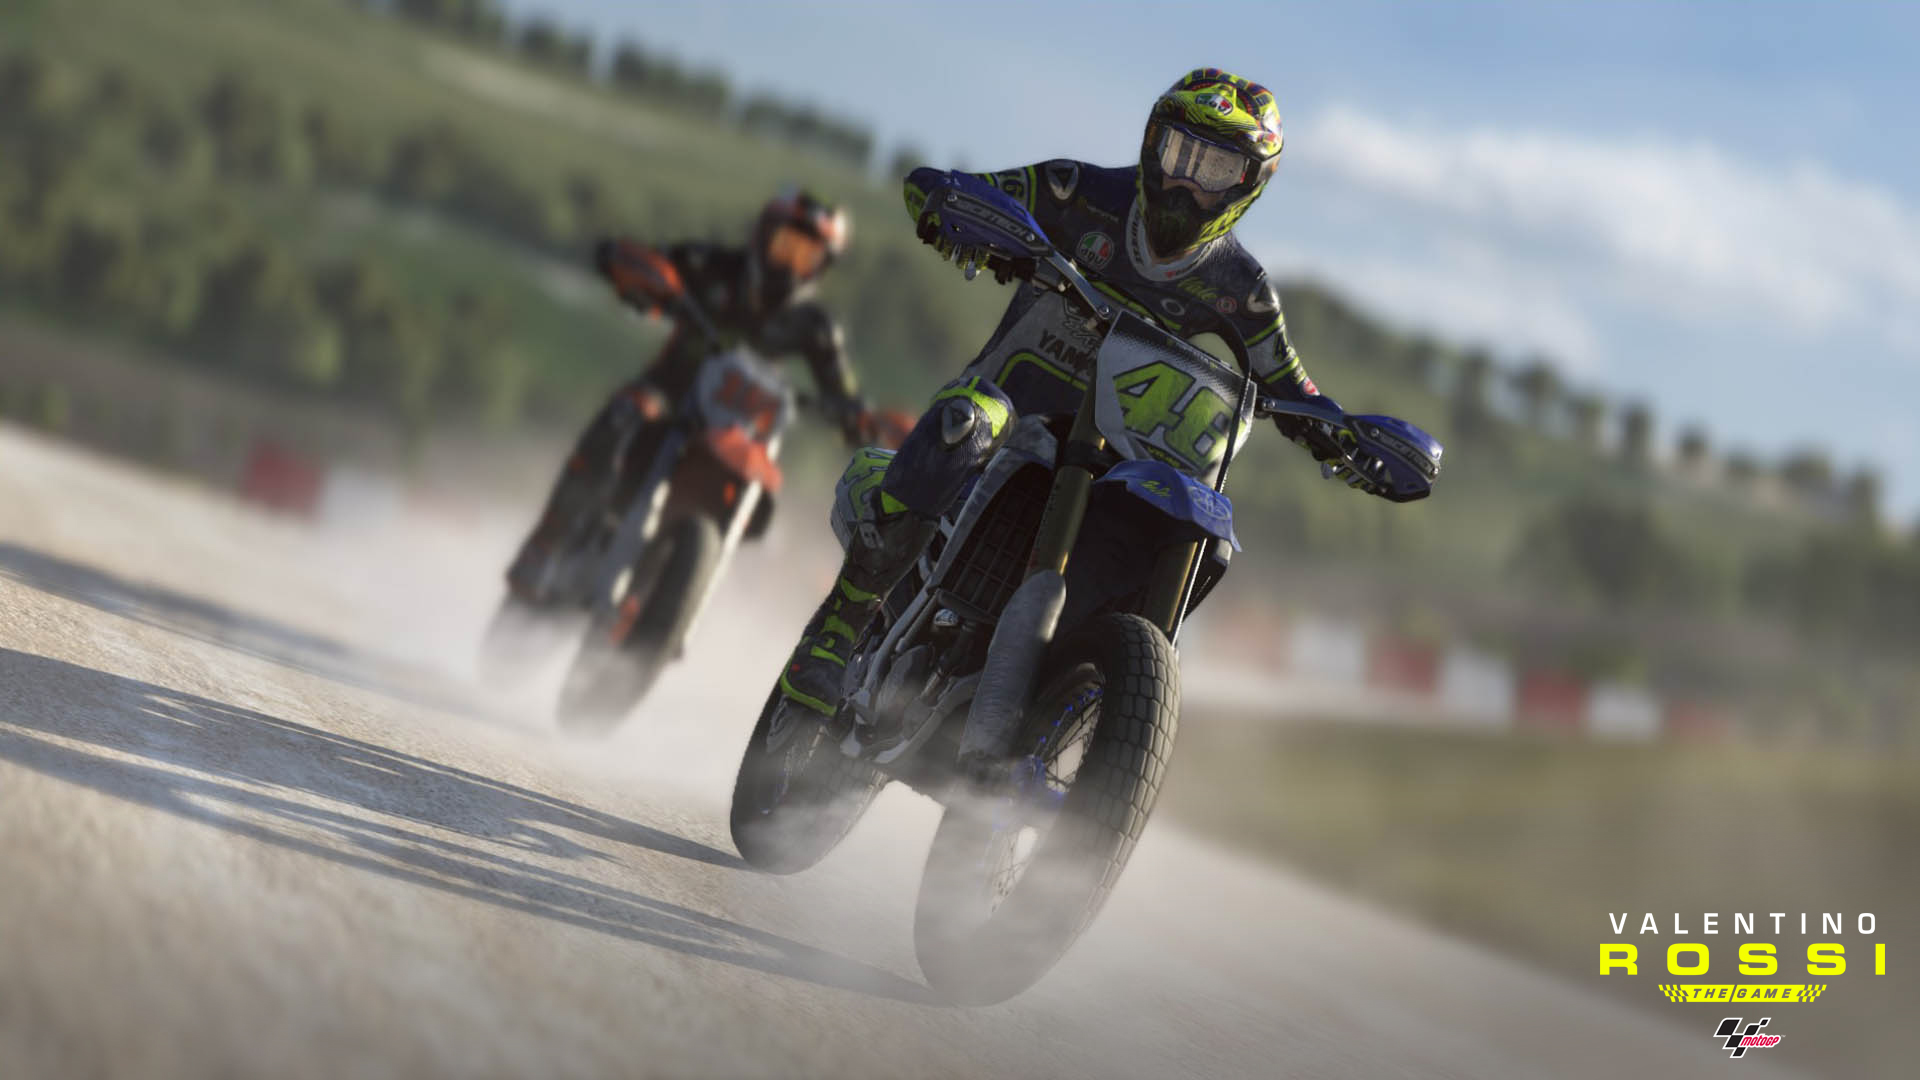 Valentino Rossi The Game Download For Free